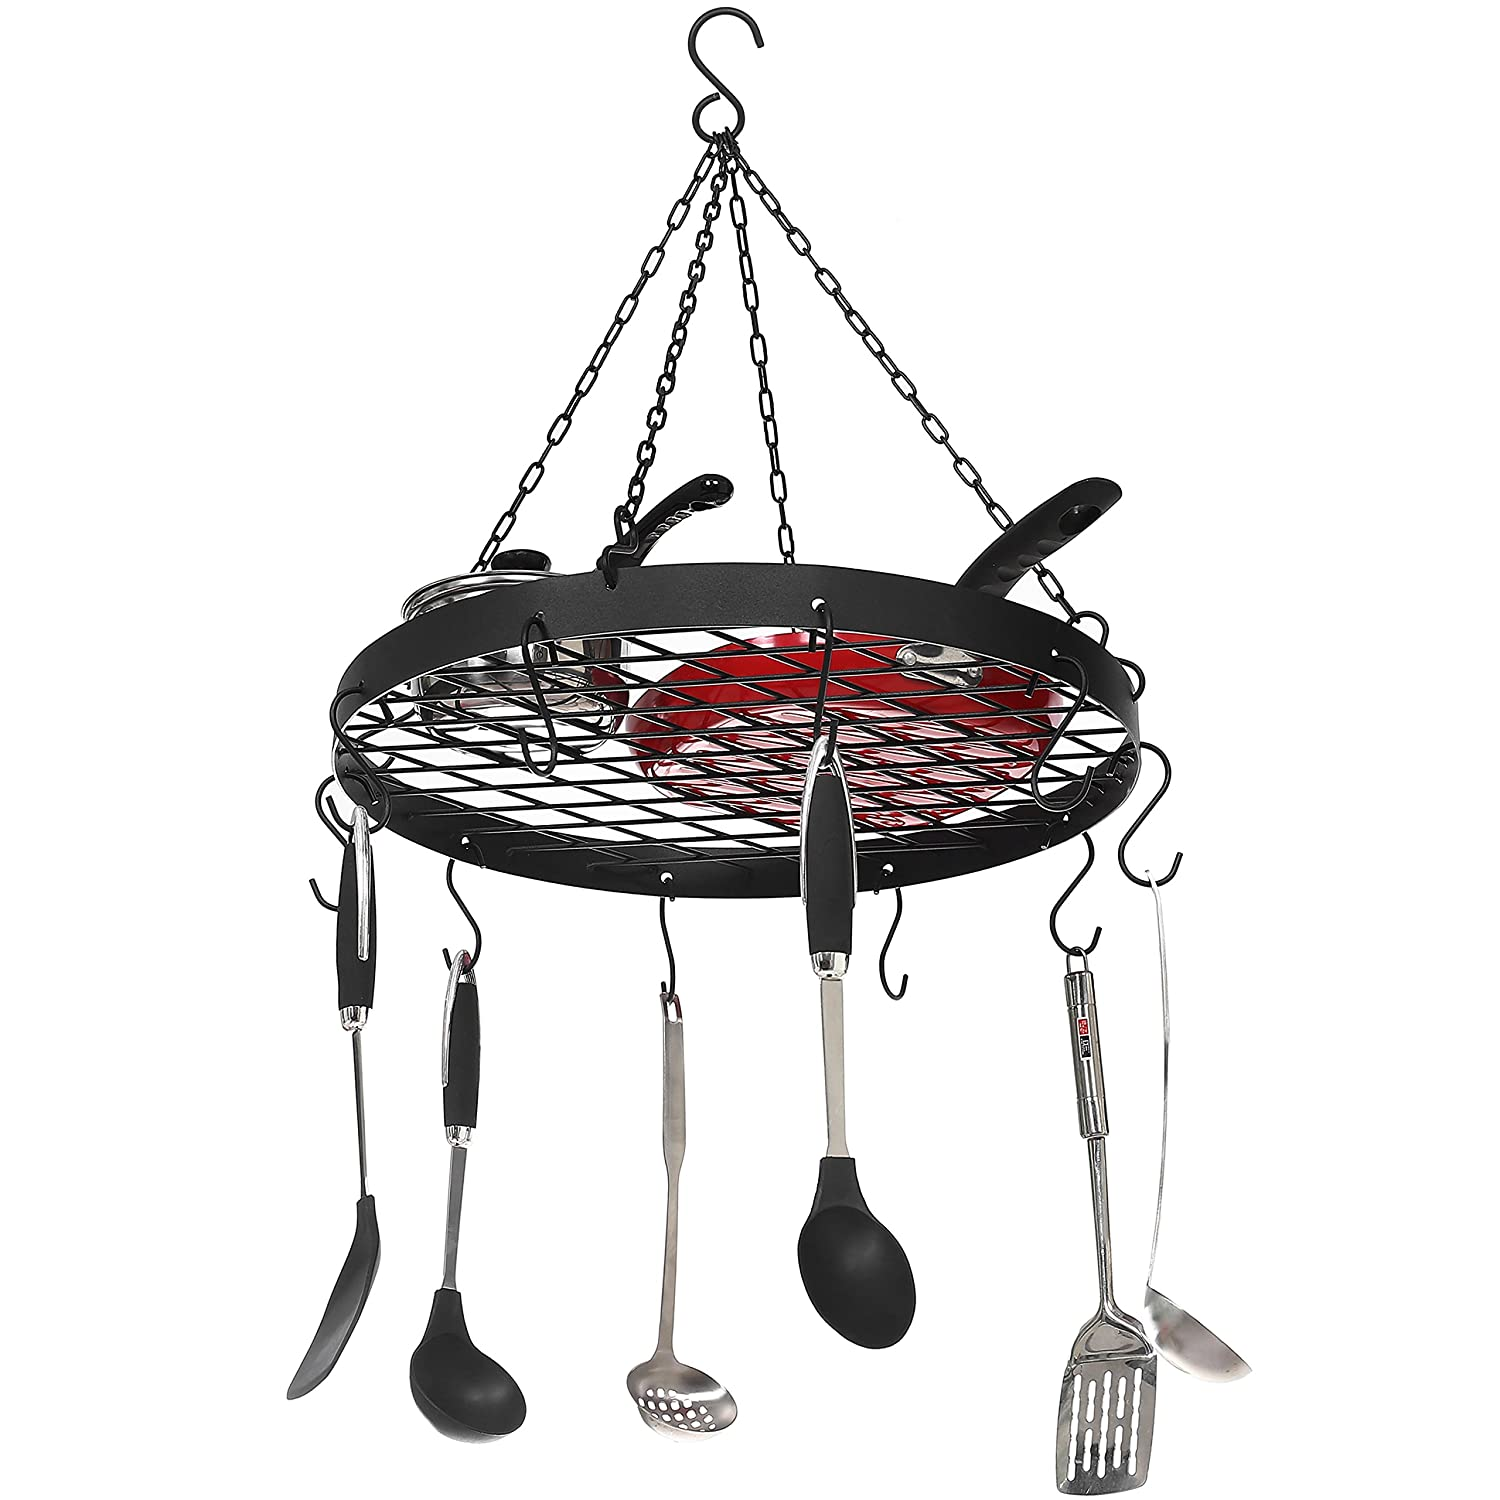 MyGift SHOMHNK004 Pans /& Utensils Rack w//Hanging 10 S-Hooks and Wire Grate Shelf Black Metal Ceiling-Mounted Round Pots